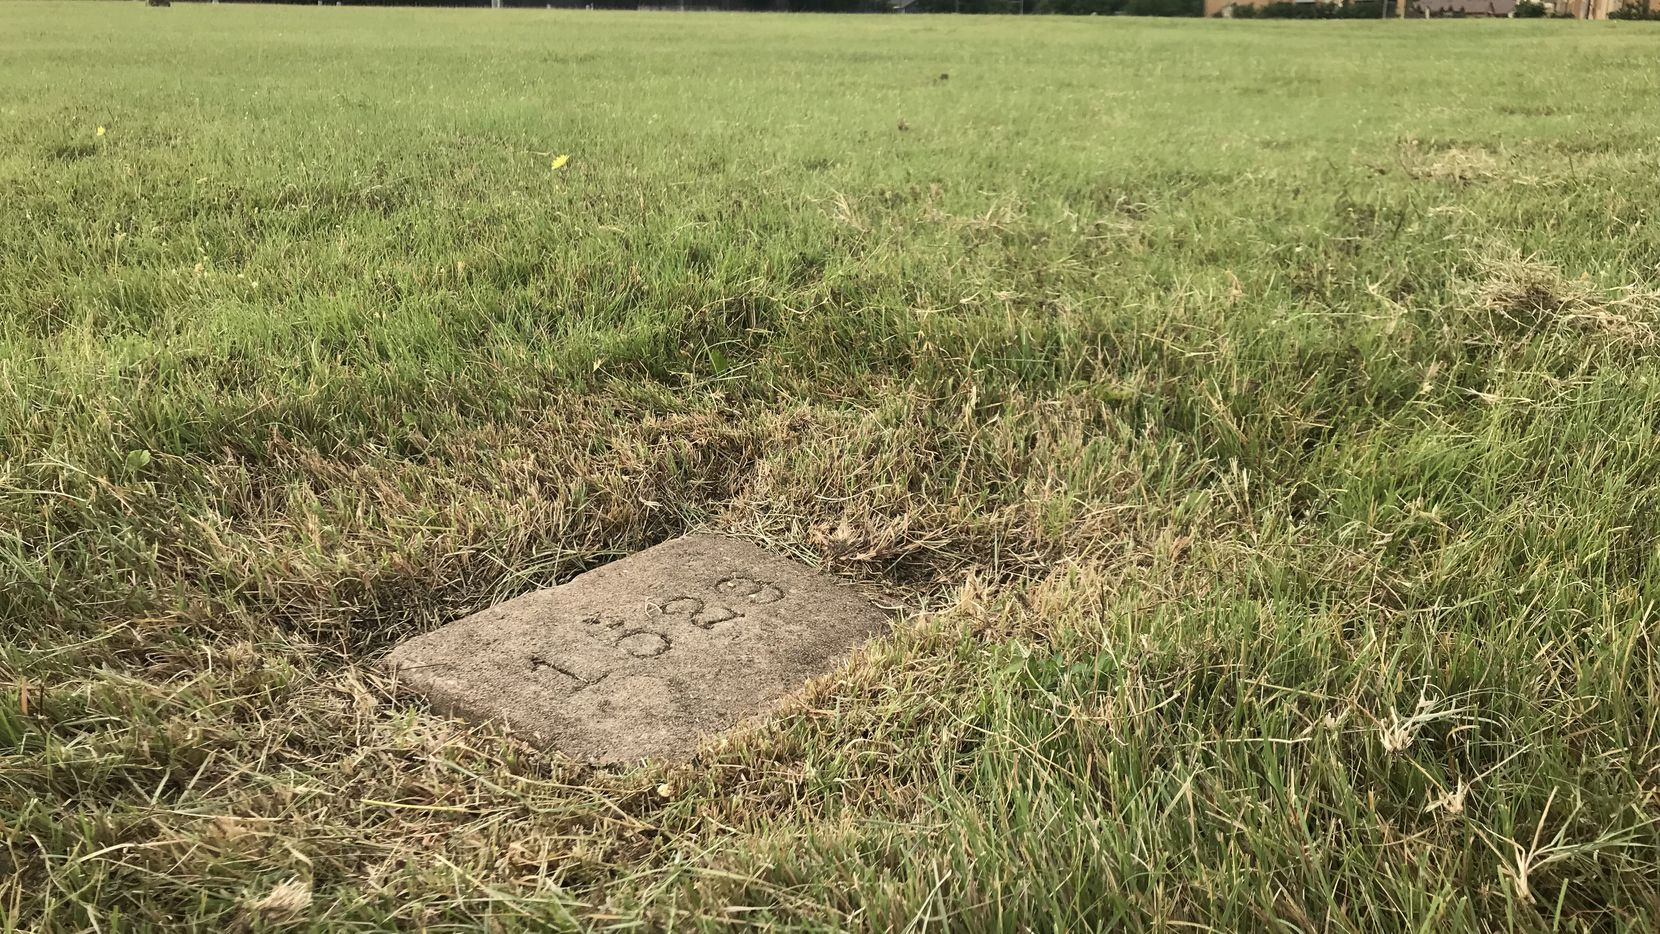 A numbered slab marking the final resting place of a patient who died at the Austin State Hospital, known as the State Lunatic Asylum until 1925, was photographed on May 23 in Austin.